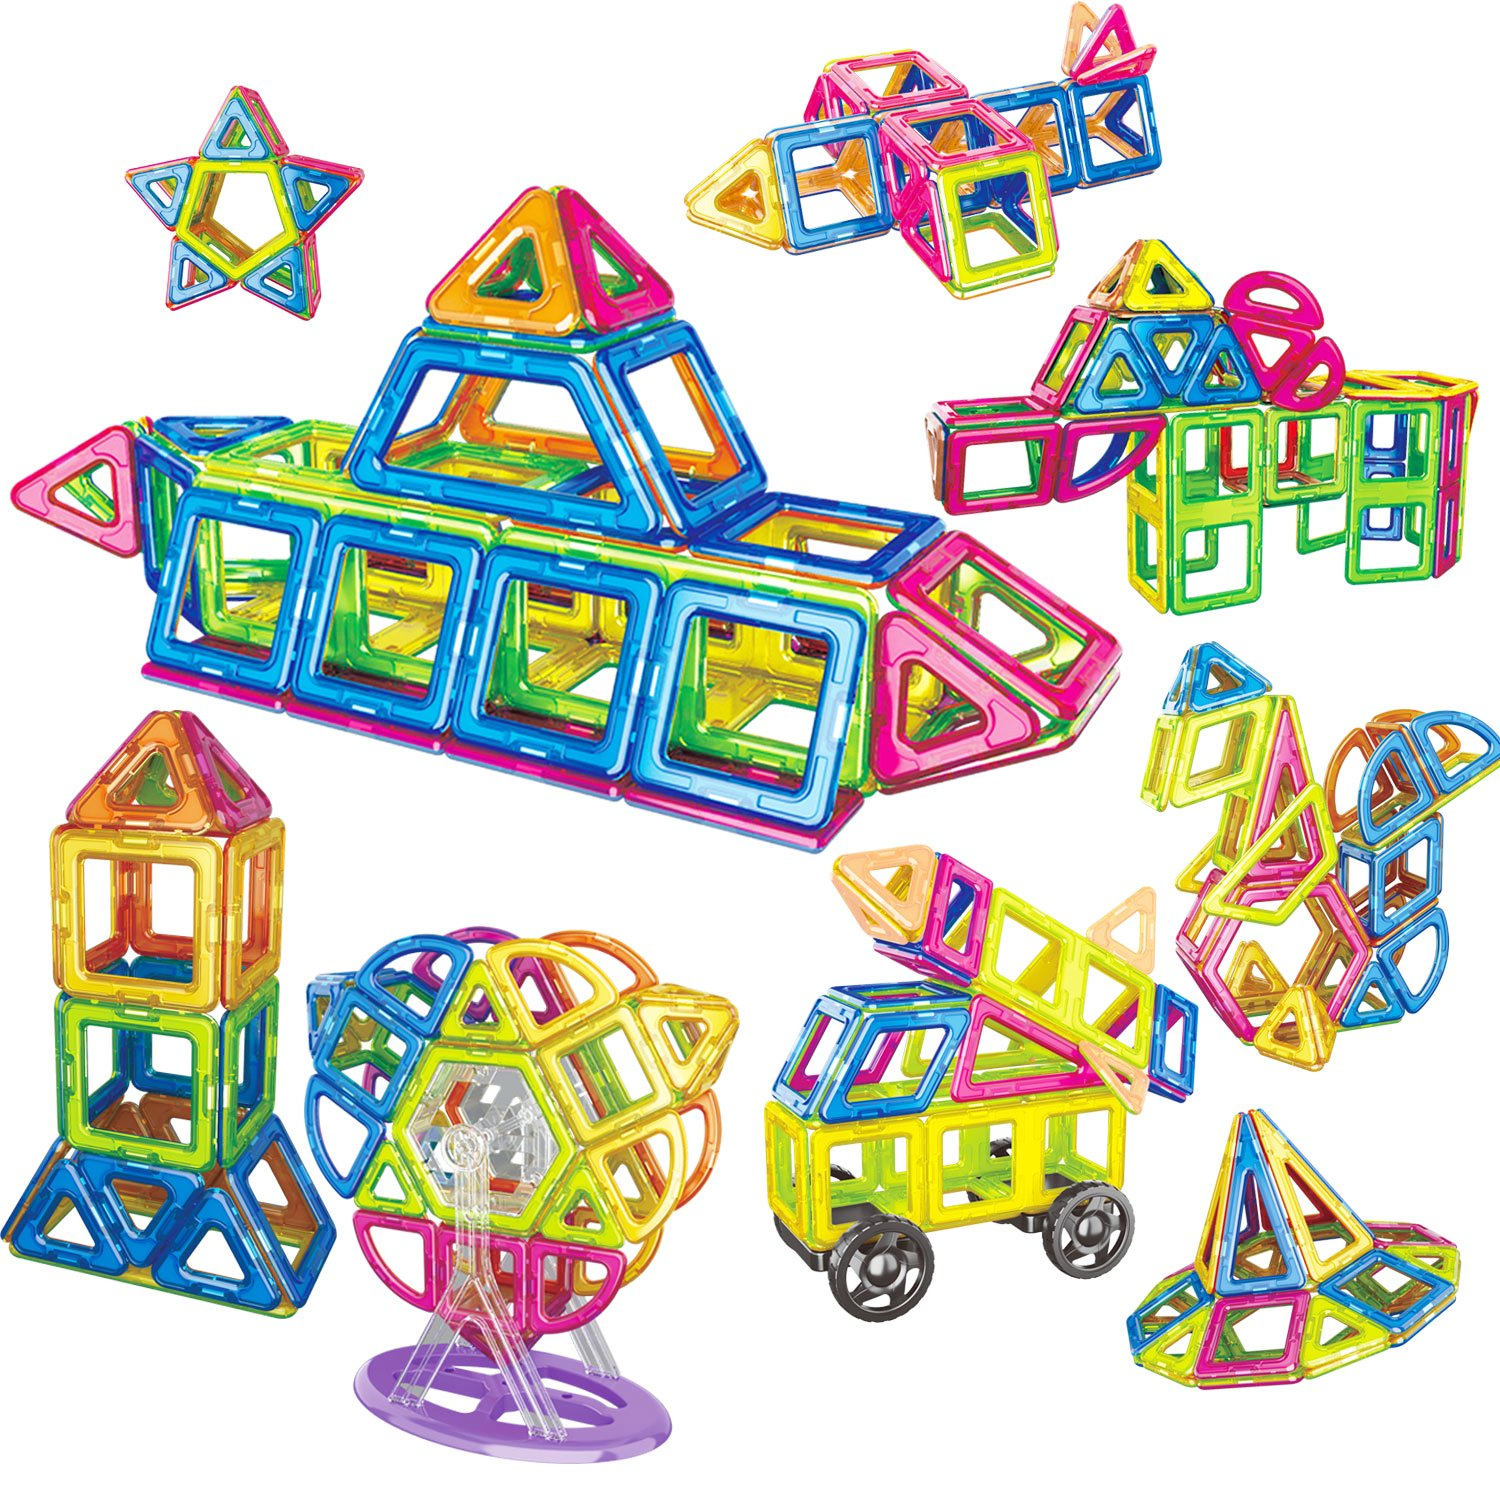 Magnetic Building Blocks Toys Set for Kids Include 87pcs Colorful Magnetic Blocks for DIY Playing KAWO